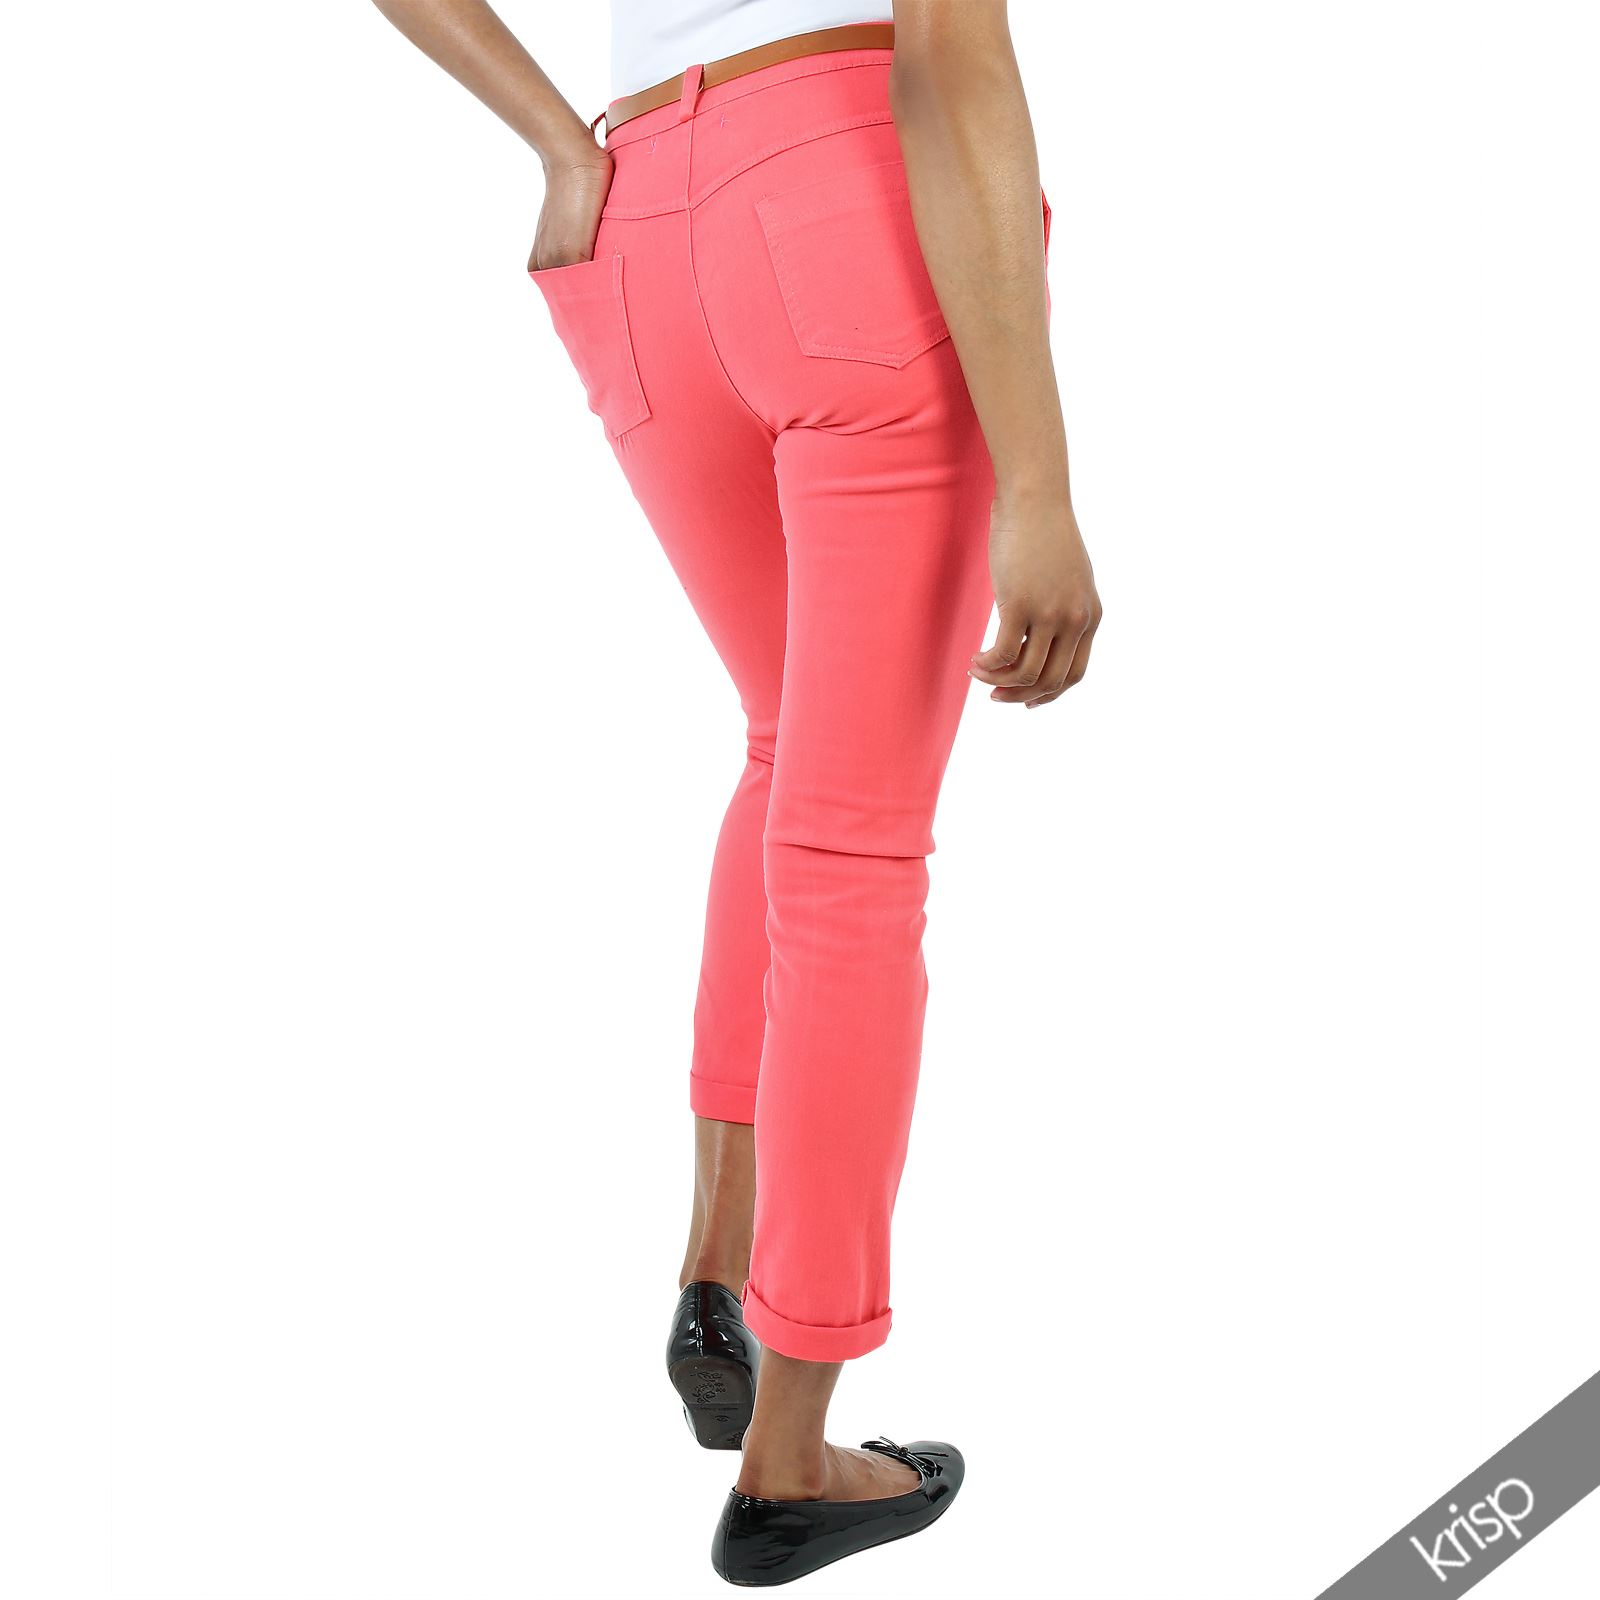 Luxury Free Next Day Delivery On Prime Eligible Amazon Fashion Orders Free 30Days Returns The Skinny Is Very Slim From The Ankle Up Through The Hips High Rise Sit On Your Natural Waistline Ankle Grazer Sits On The Ankle